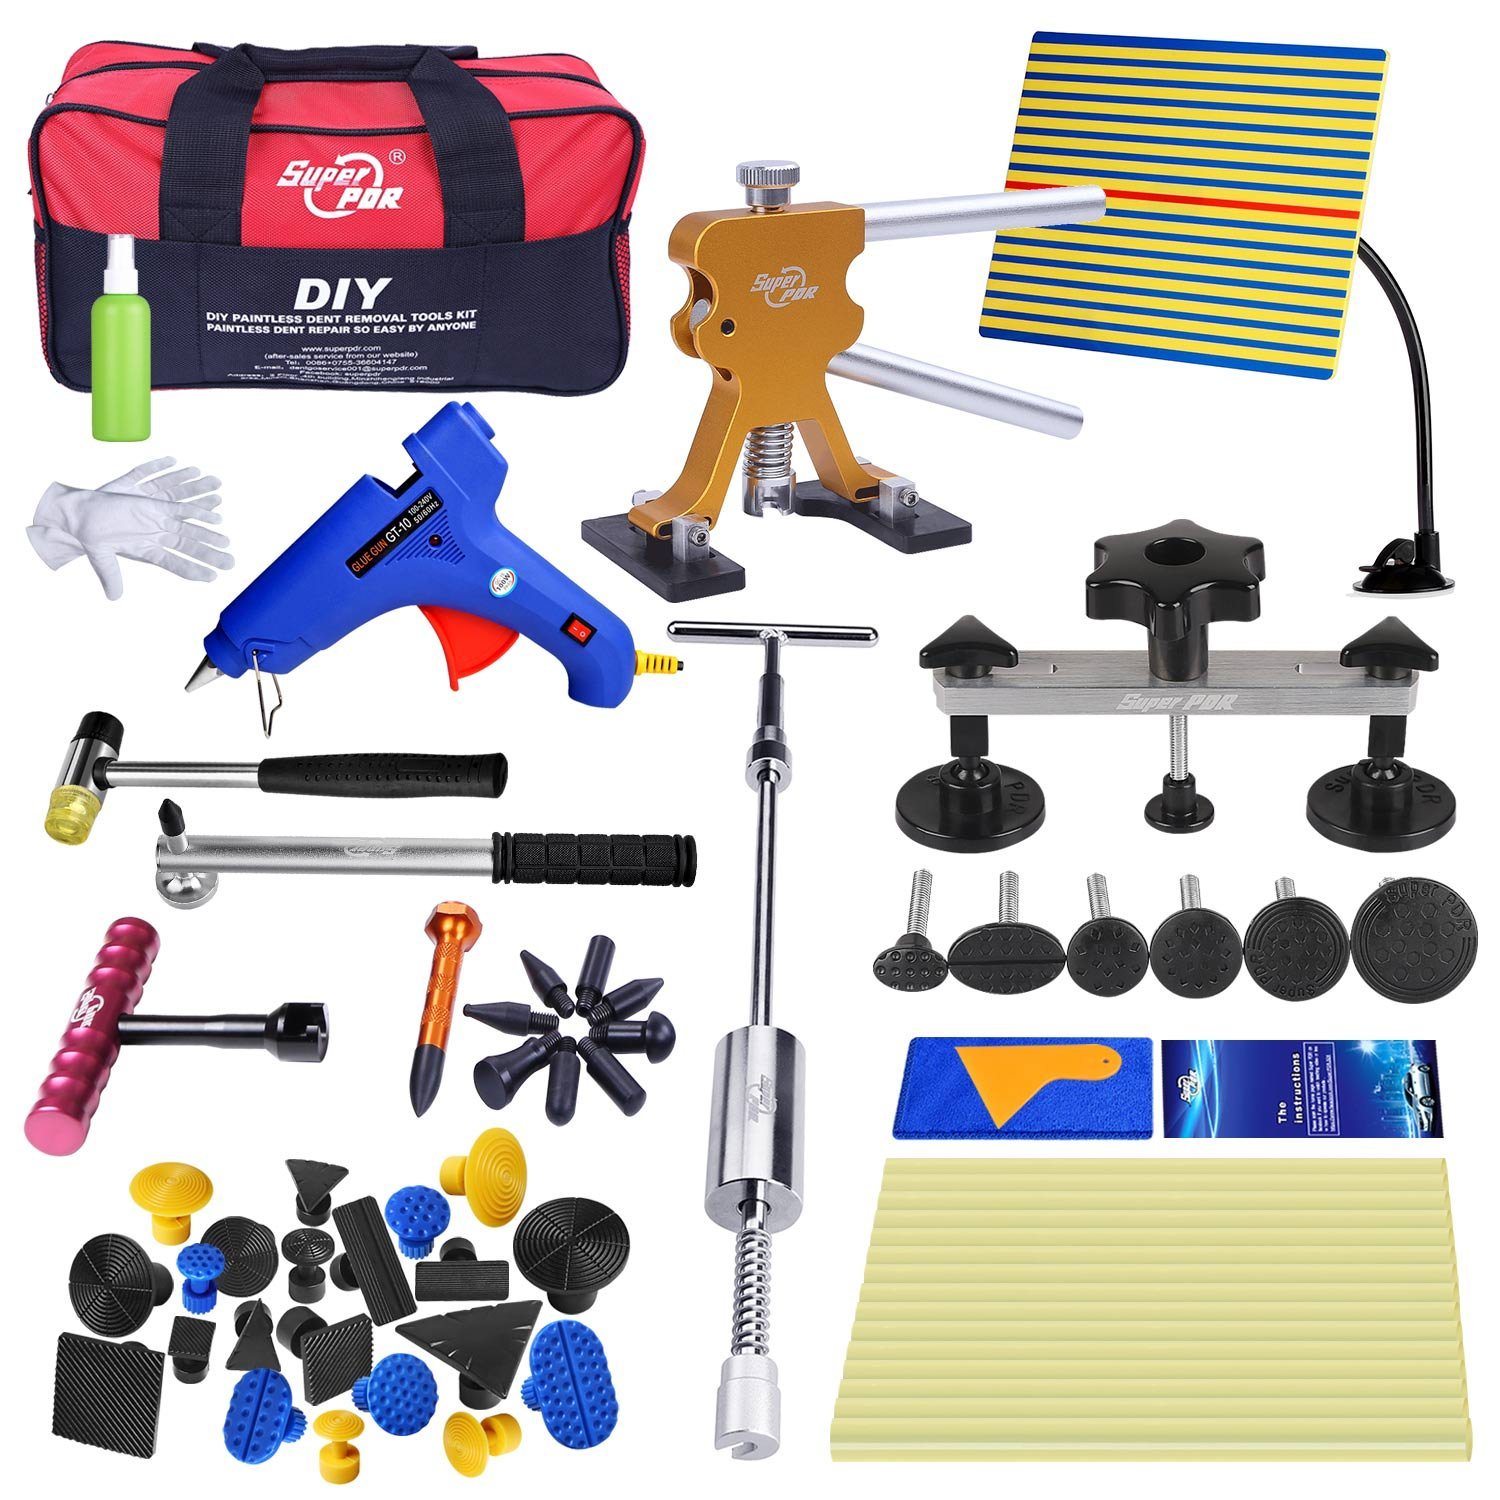 Super PDR 20pcs Dent Puller Dent Repair Kits Suction Cup Pop a Dent Piantless Tools